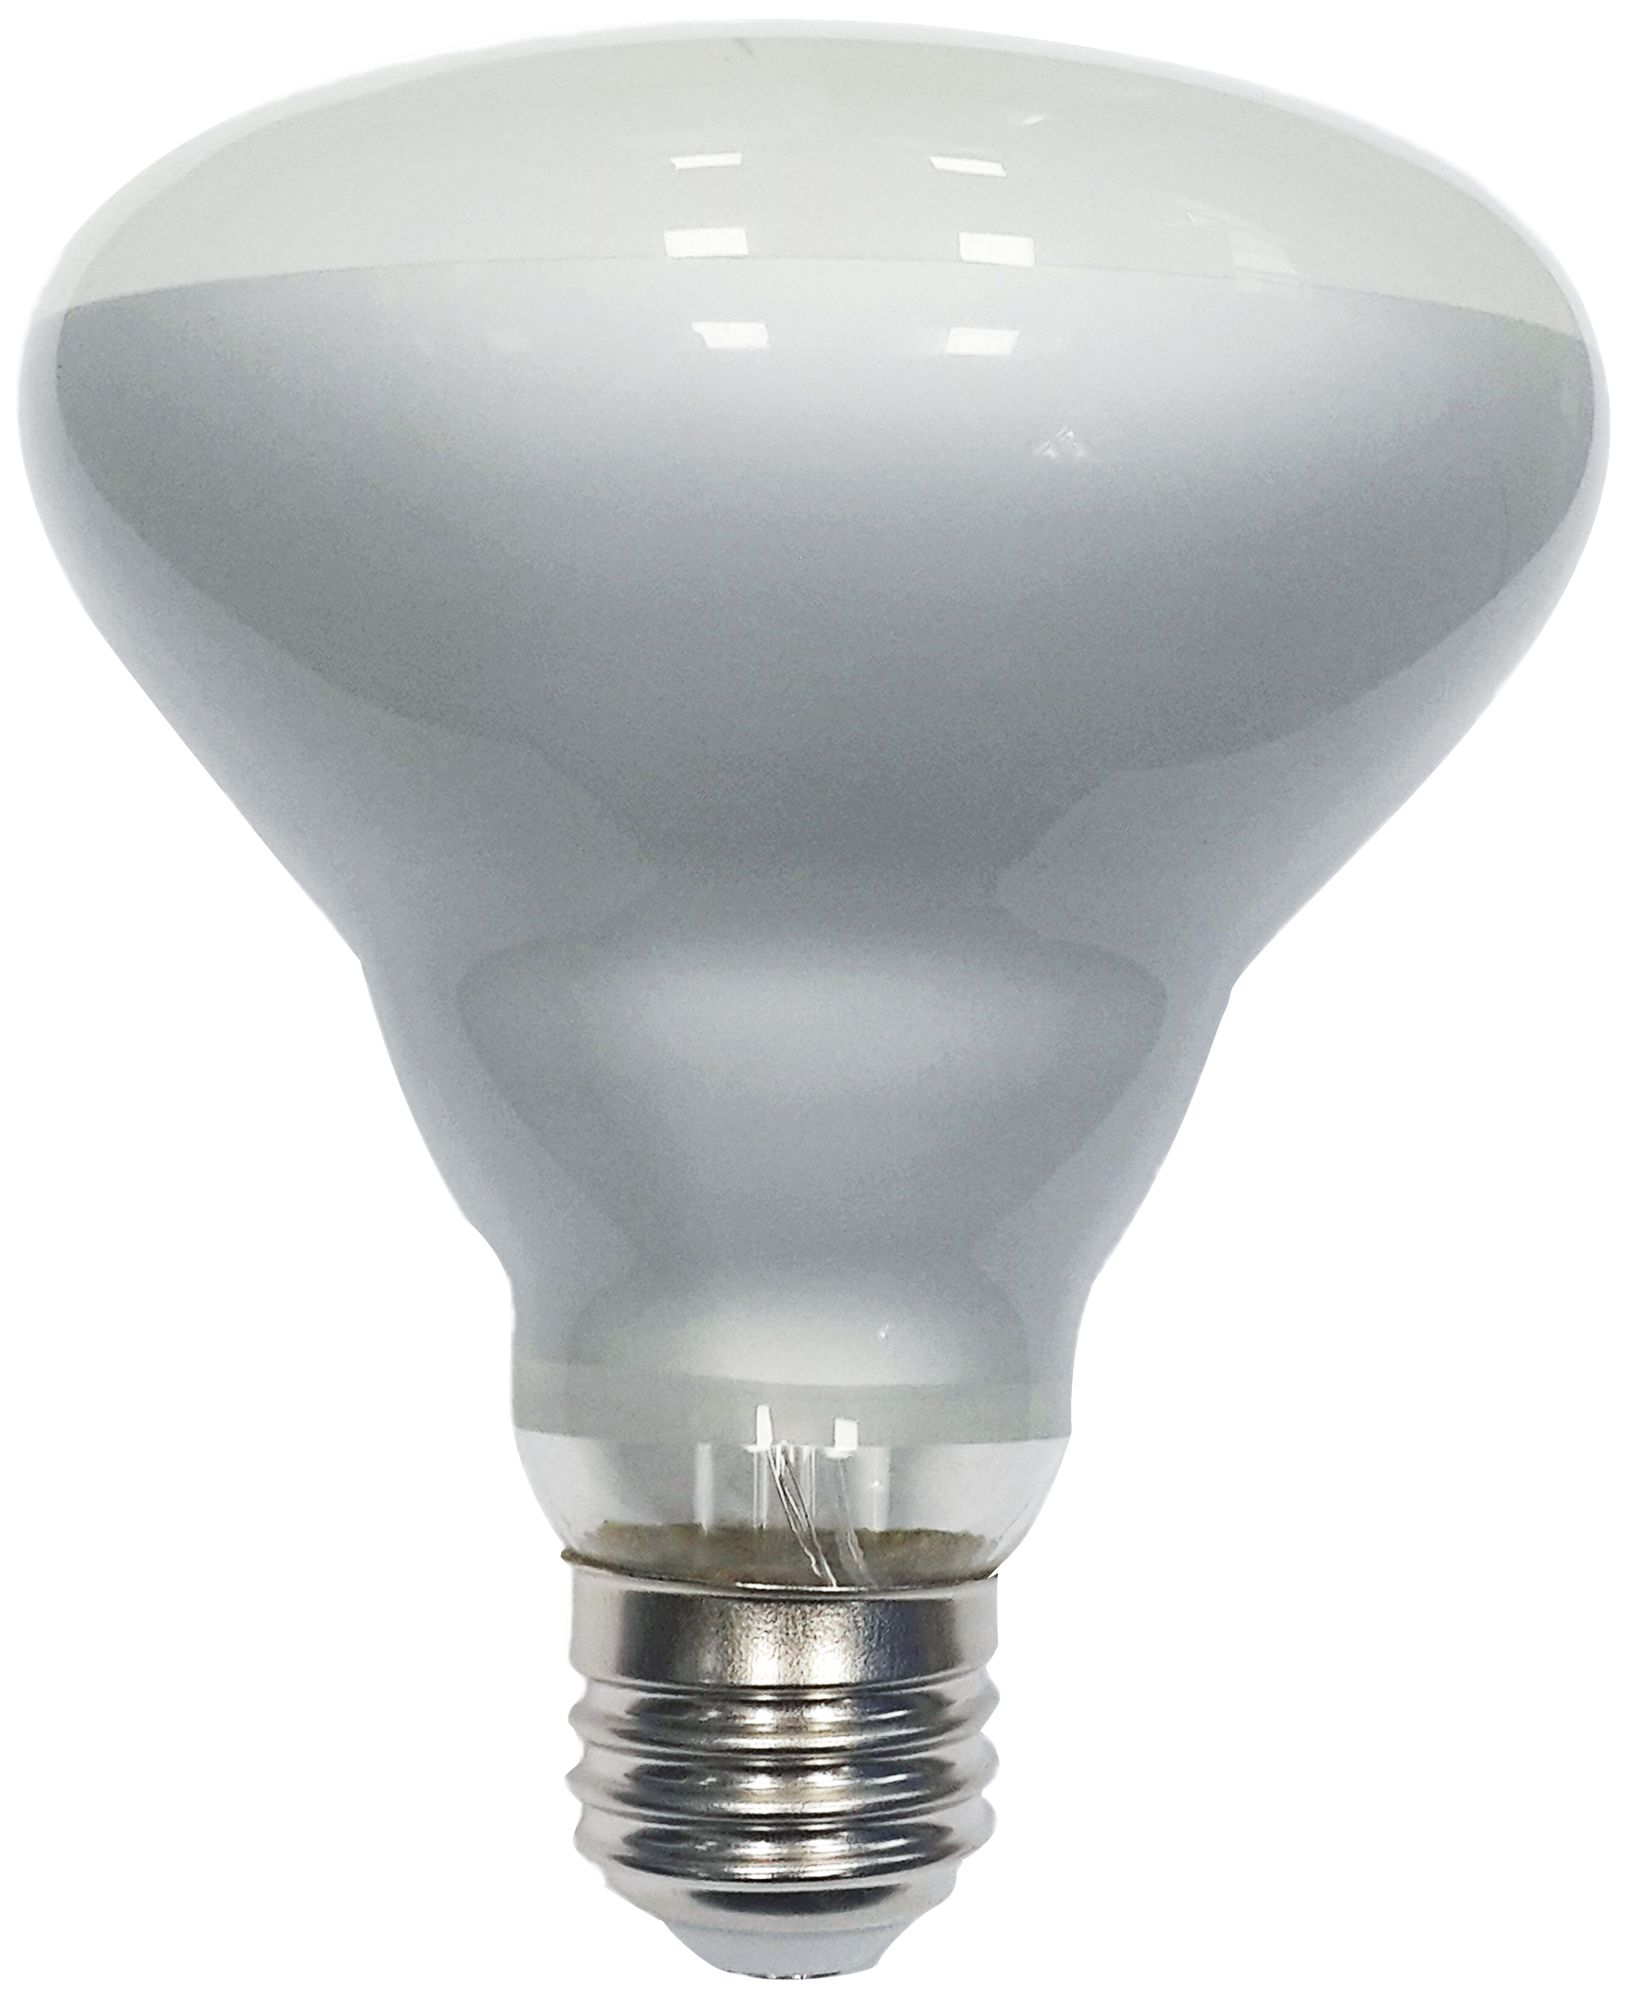 60W Equivalent Tesler Frosted 7W LED Dimmable Standard  sc 1 st  L&s Plus & 60 Watt Equivalent Tesler Clear 4.5W LED Dimmable Candelabra ... azcodes.com